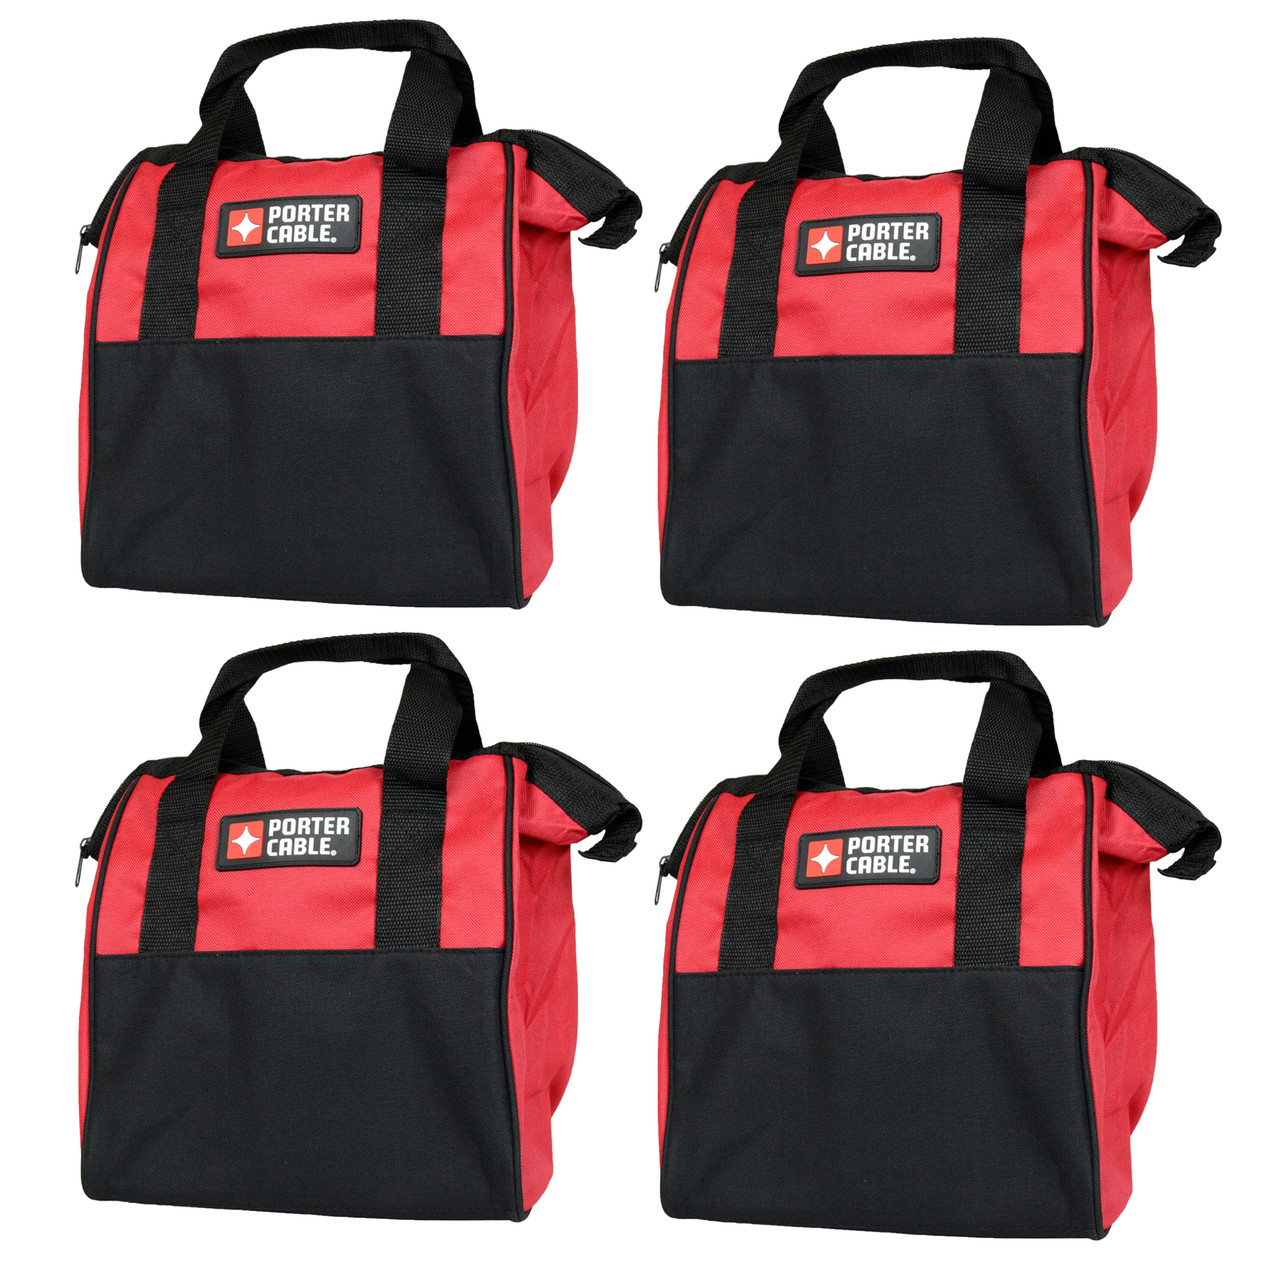 Porter Cable 10 Quot Red Soft Sided Durable Tool Bag 4 Pack